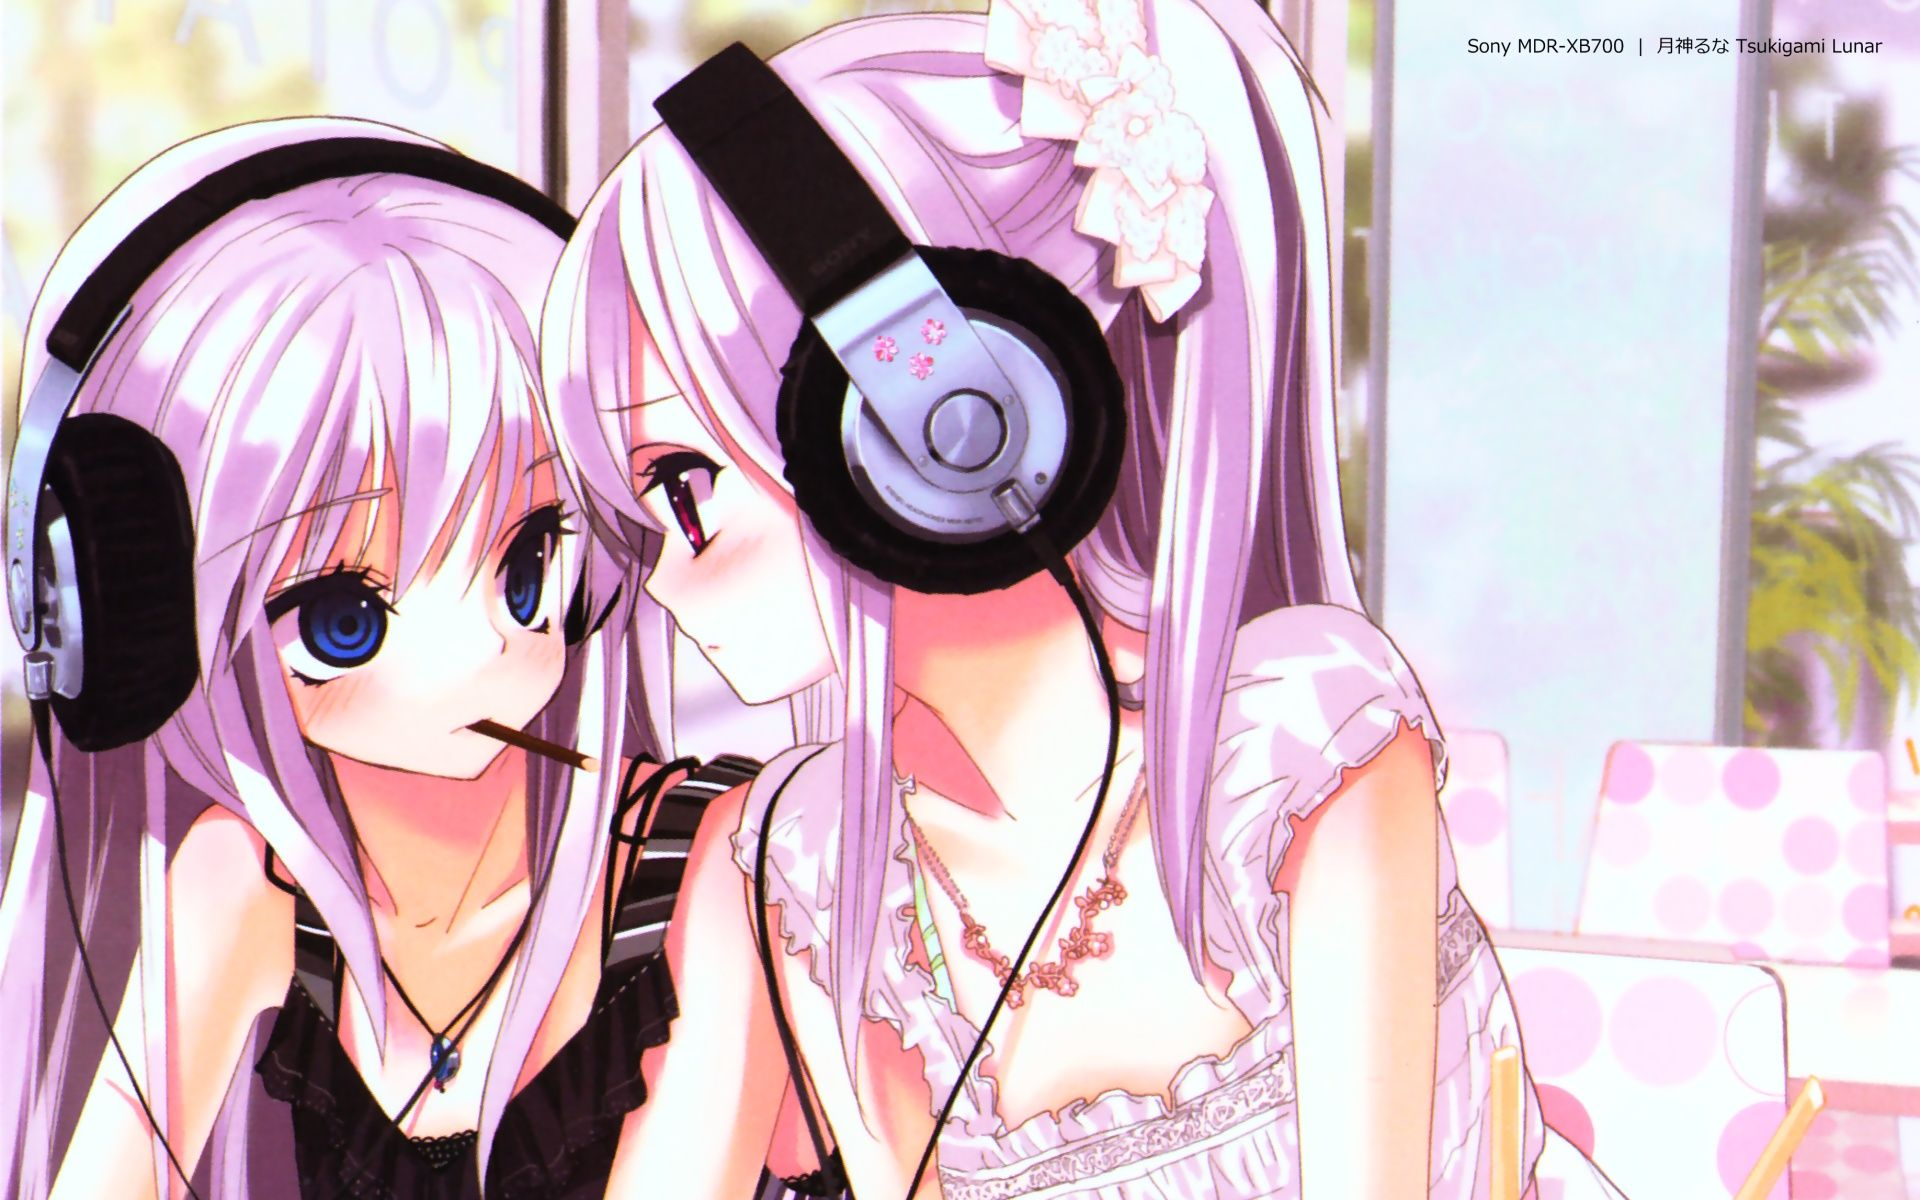 Anime headphones Wallpaper Music!) Pinterest